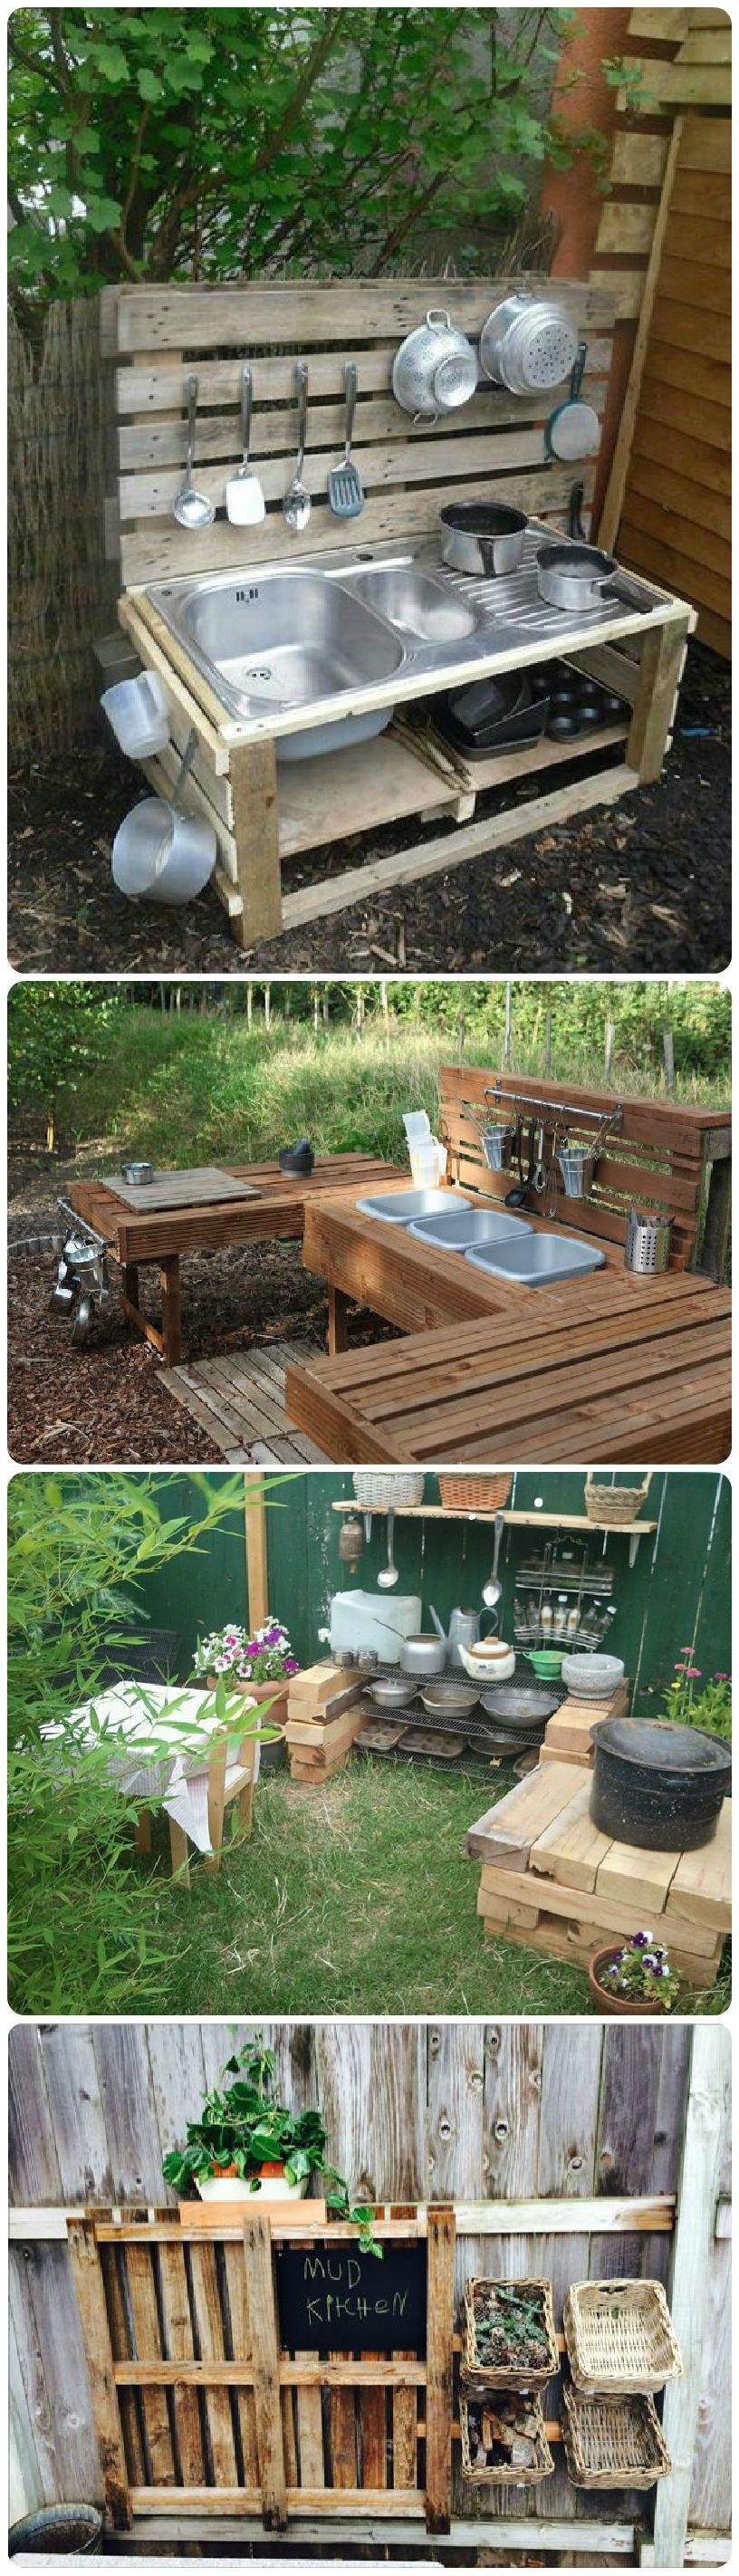 Outdoor Küche Kind 20 Mud Kitchen Ideas For Kids Gartenideen Für Kinder